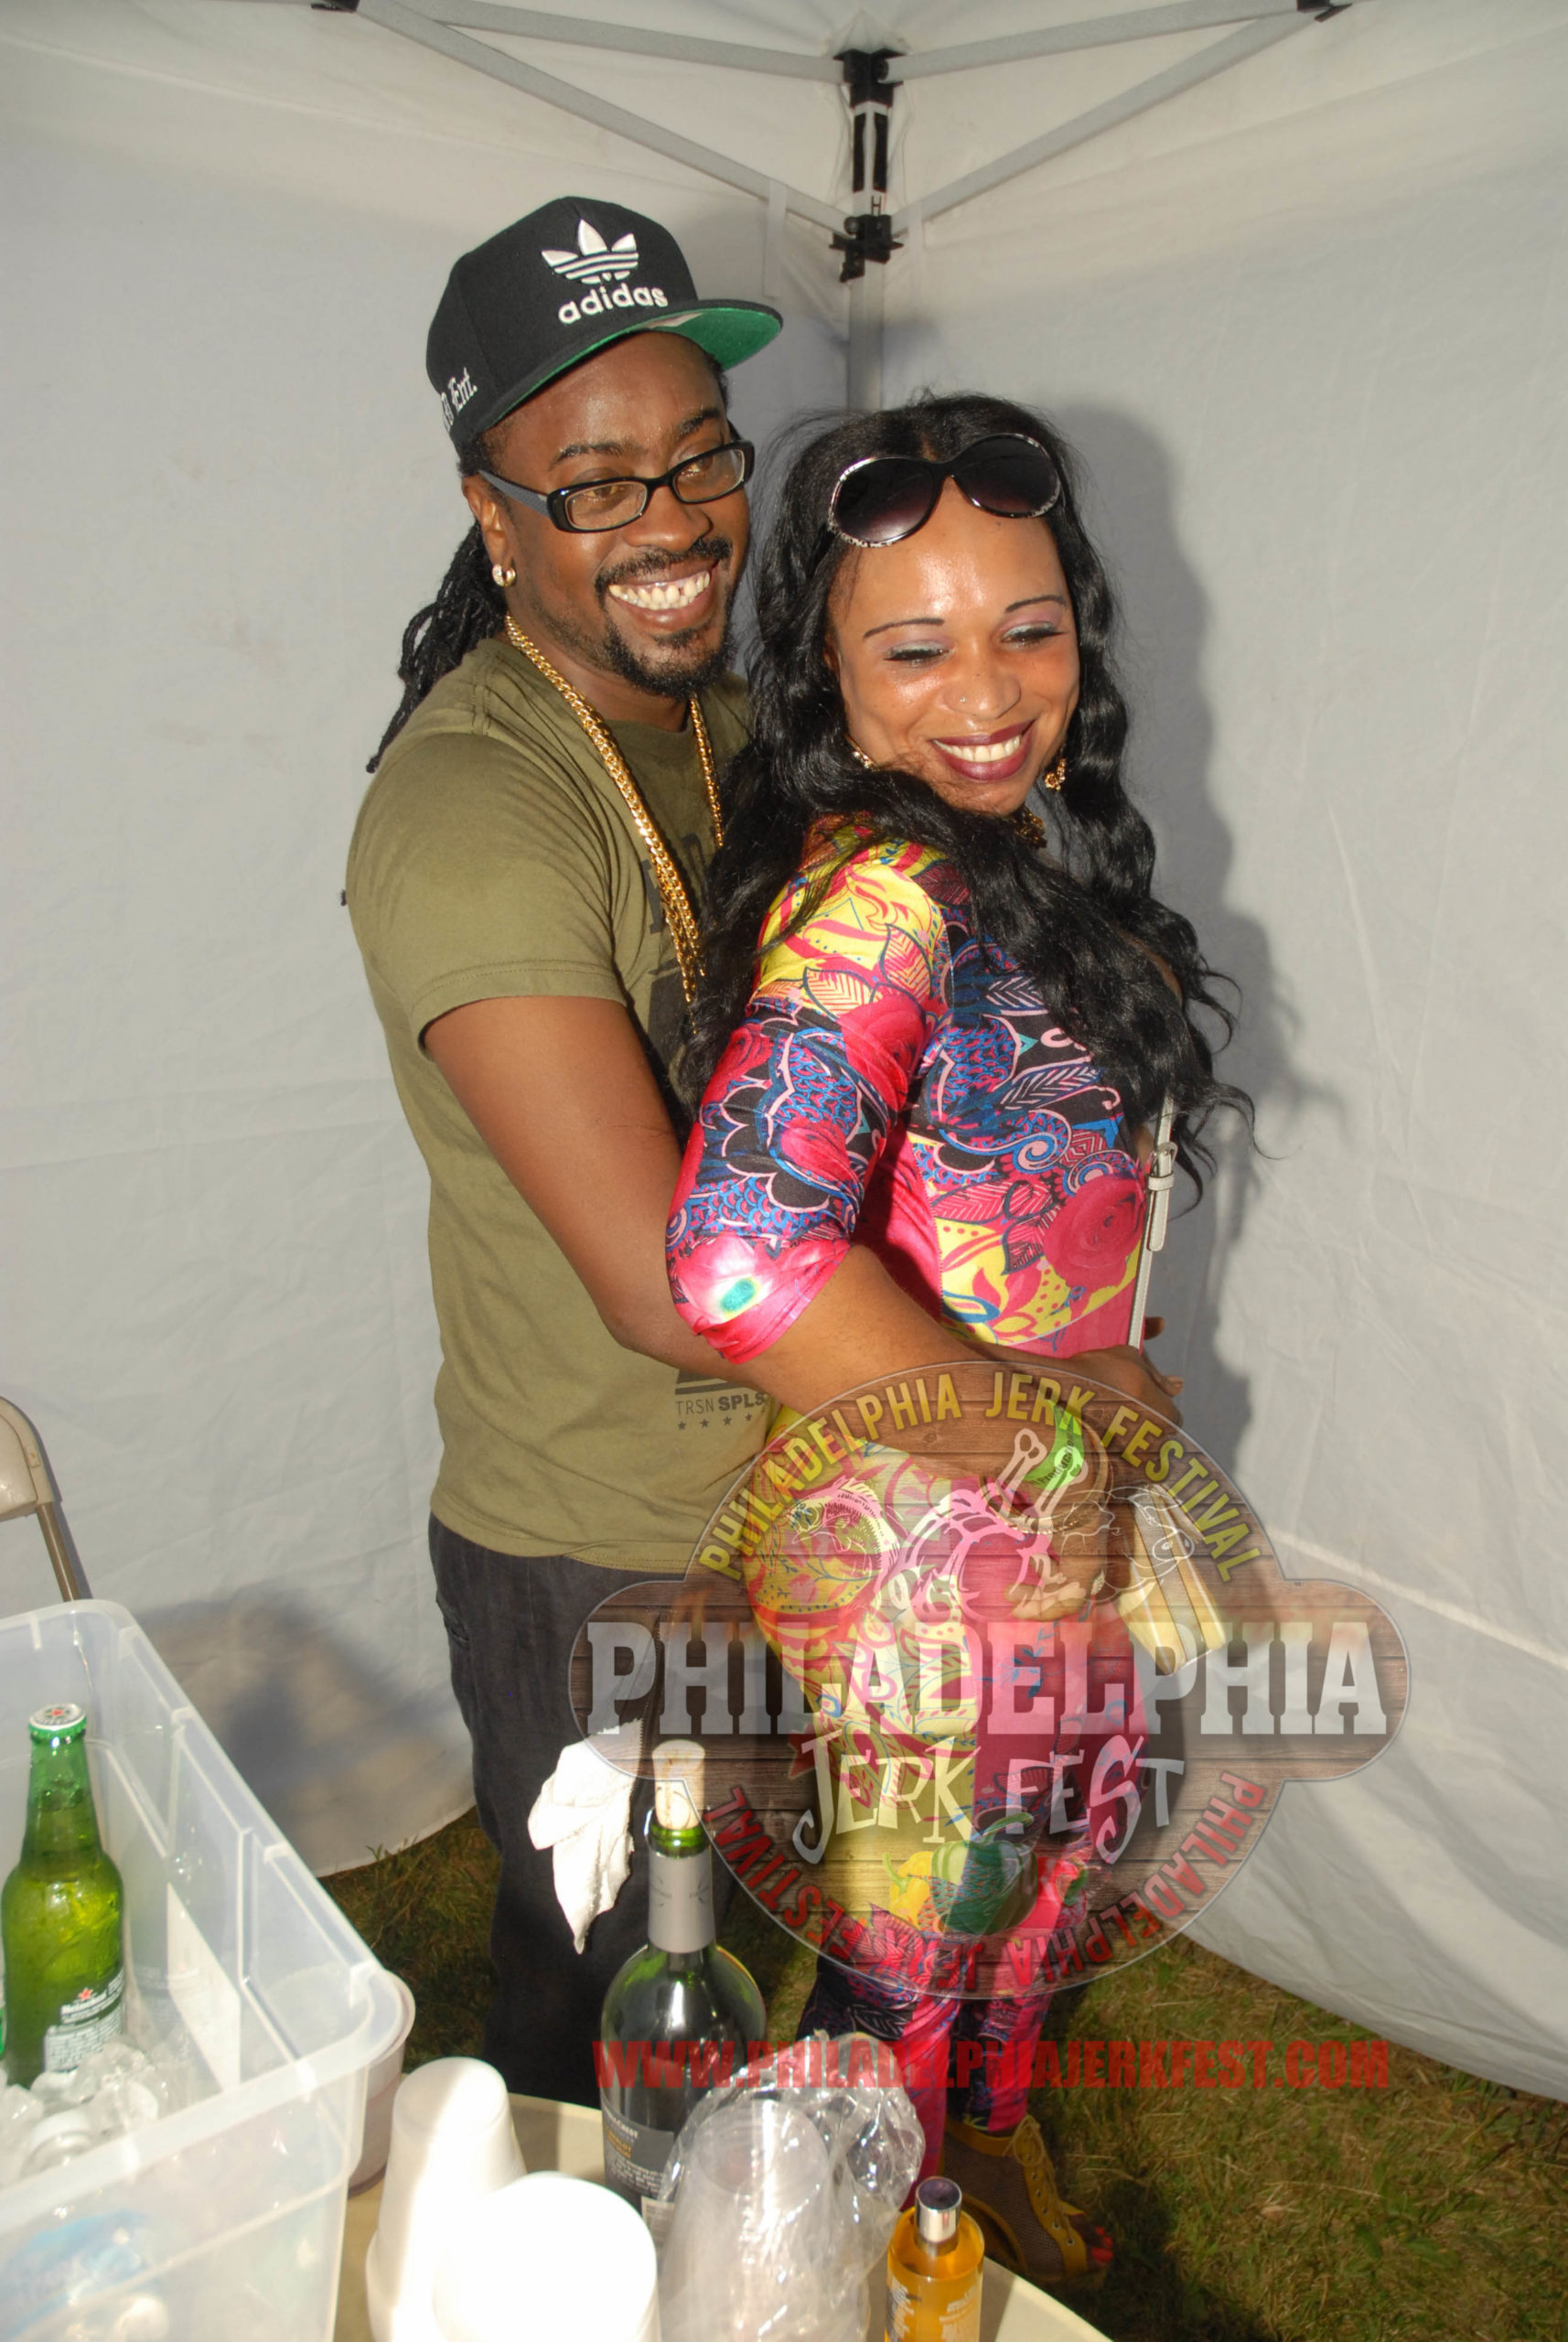 Philly Jerkfest-426